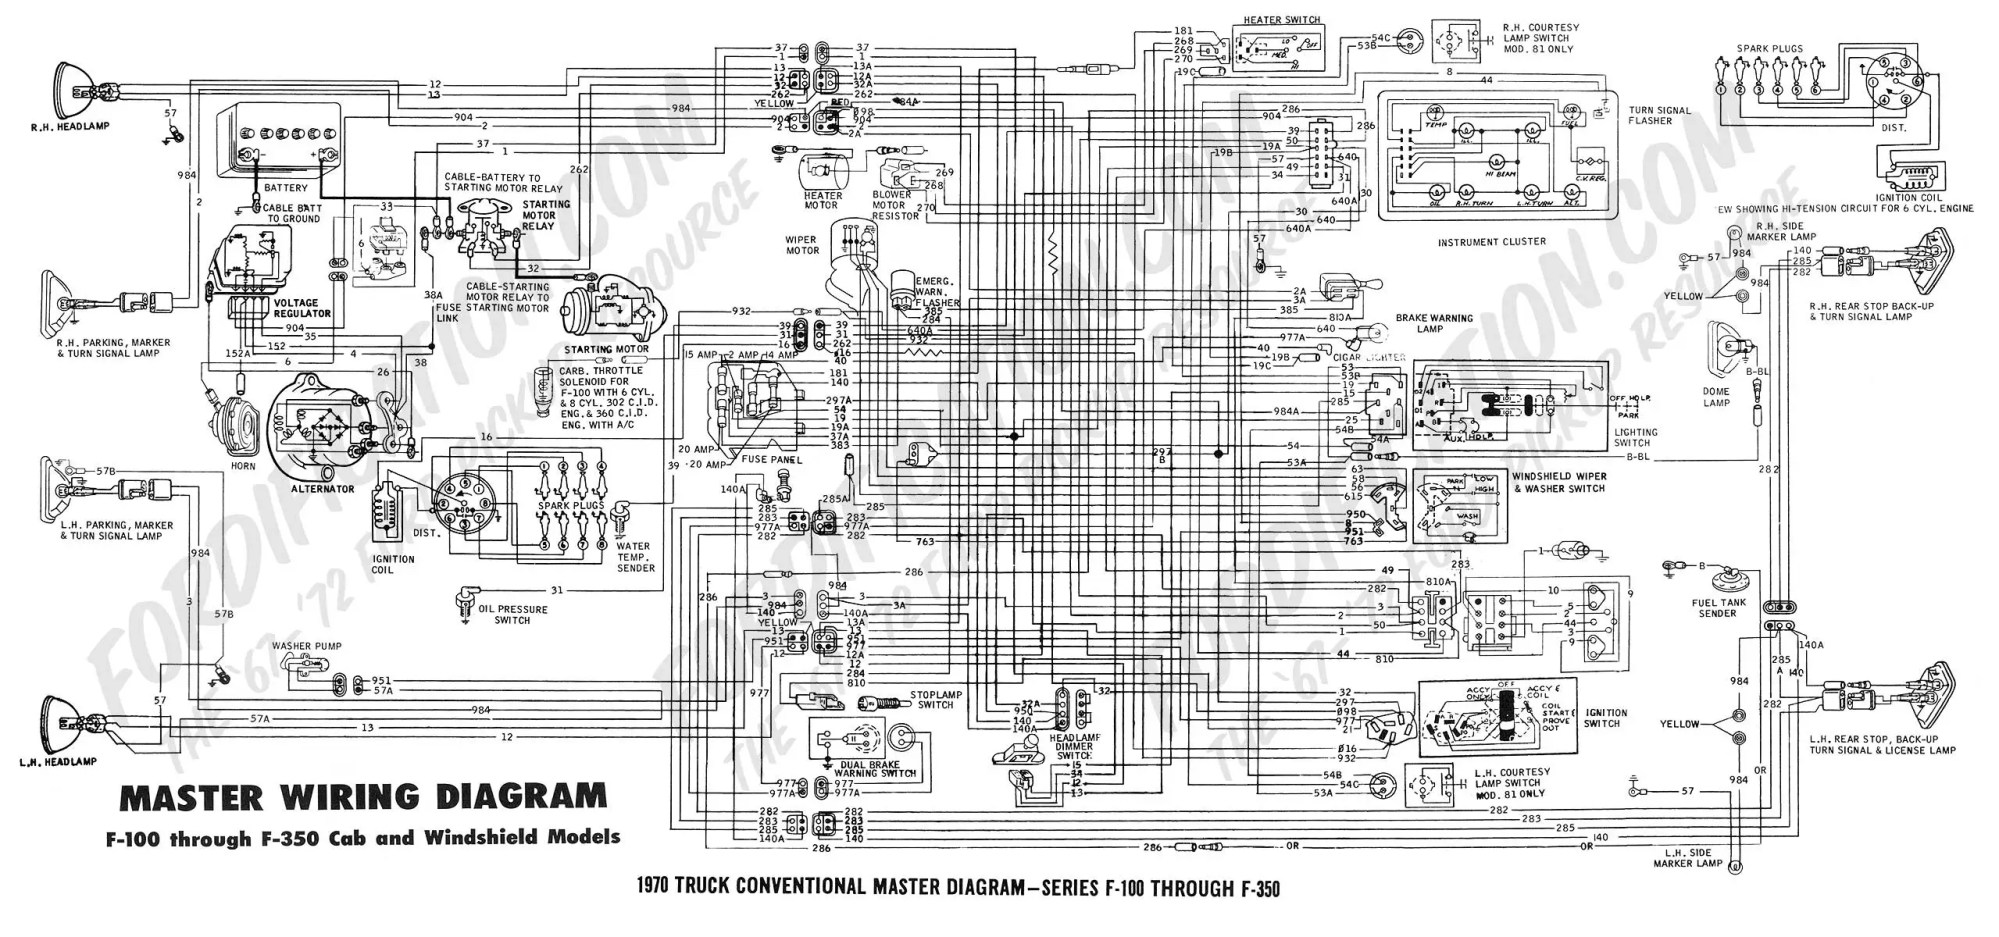 hight resolution of for a 1994 ford f150 pickup wiring diagram wiring diagram expert 1994 ford wiring diagram wiring